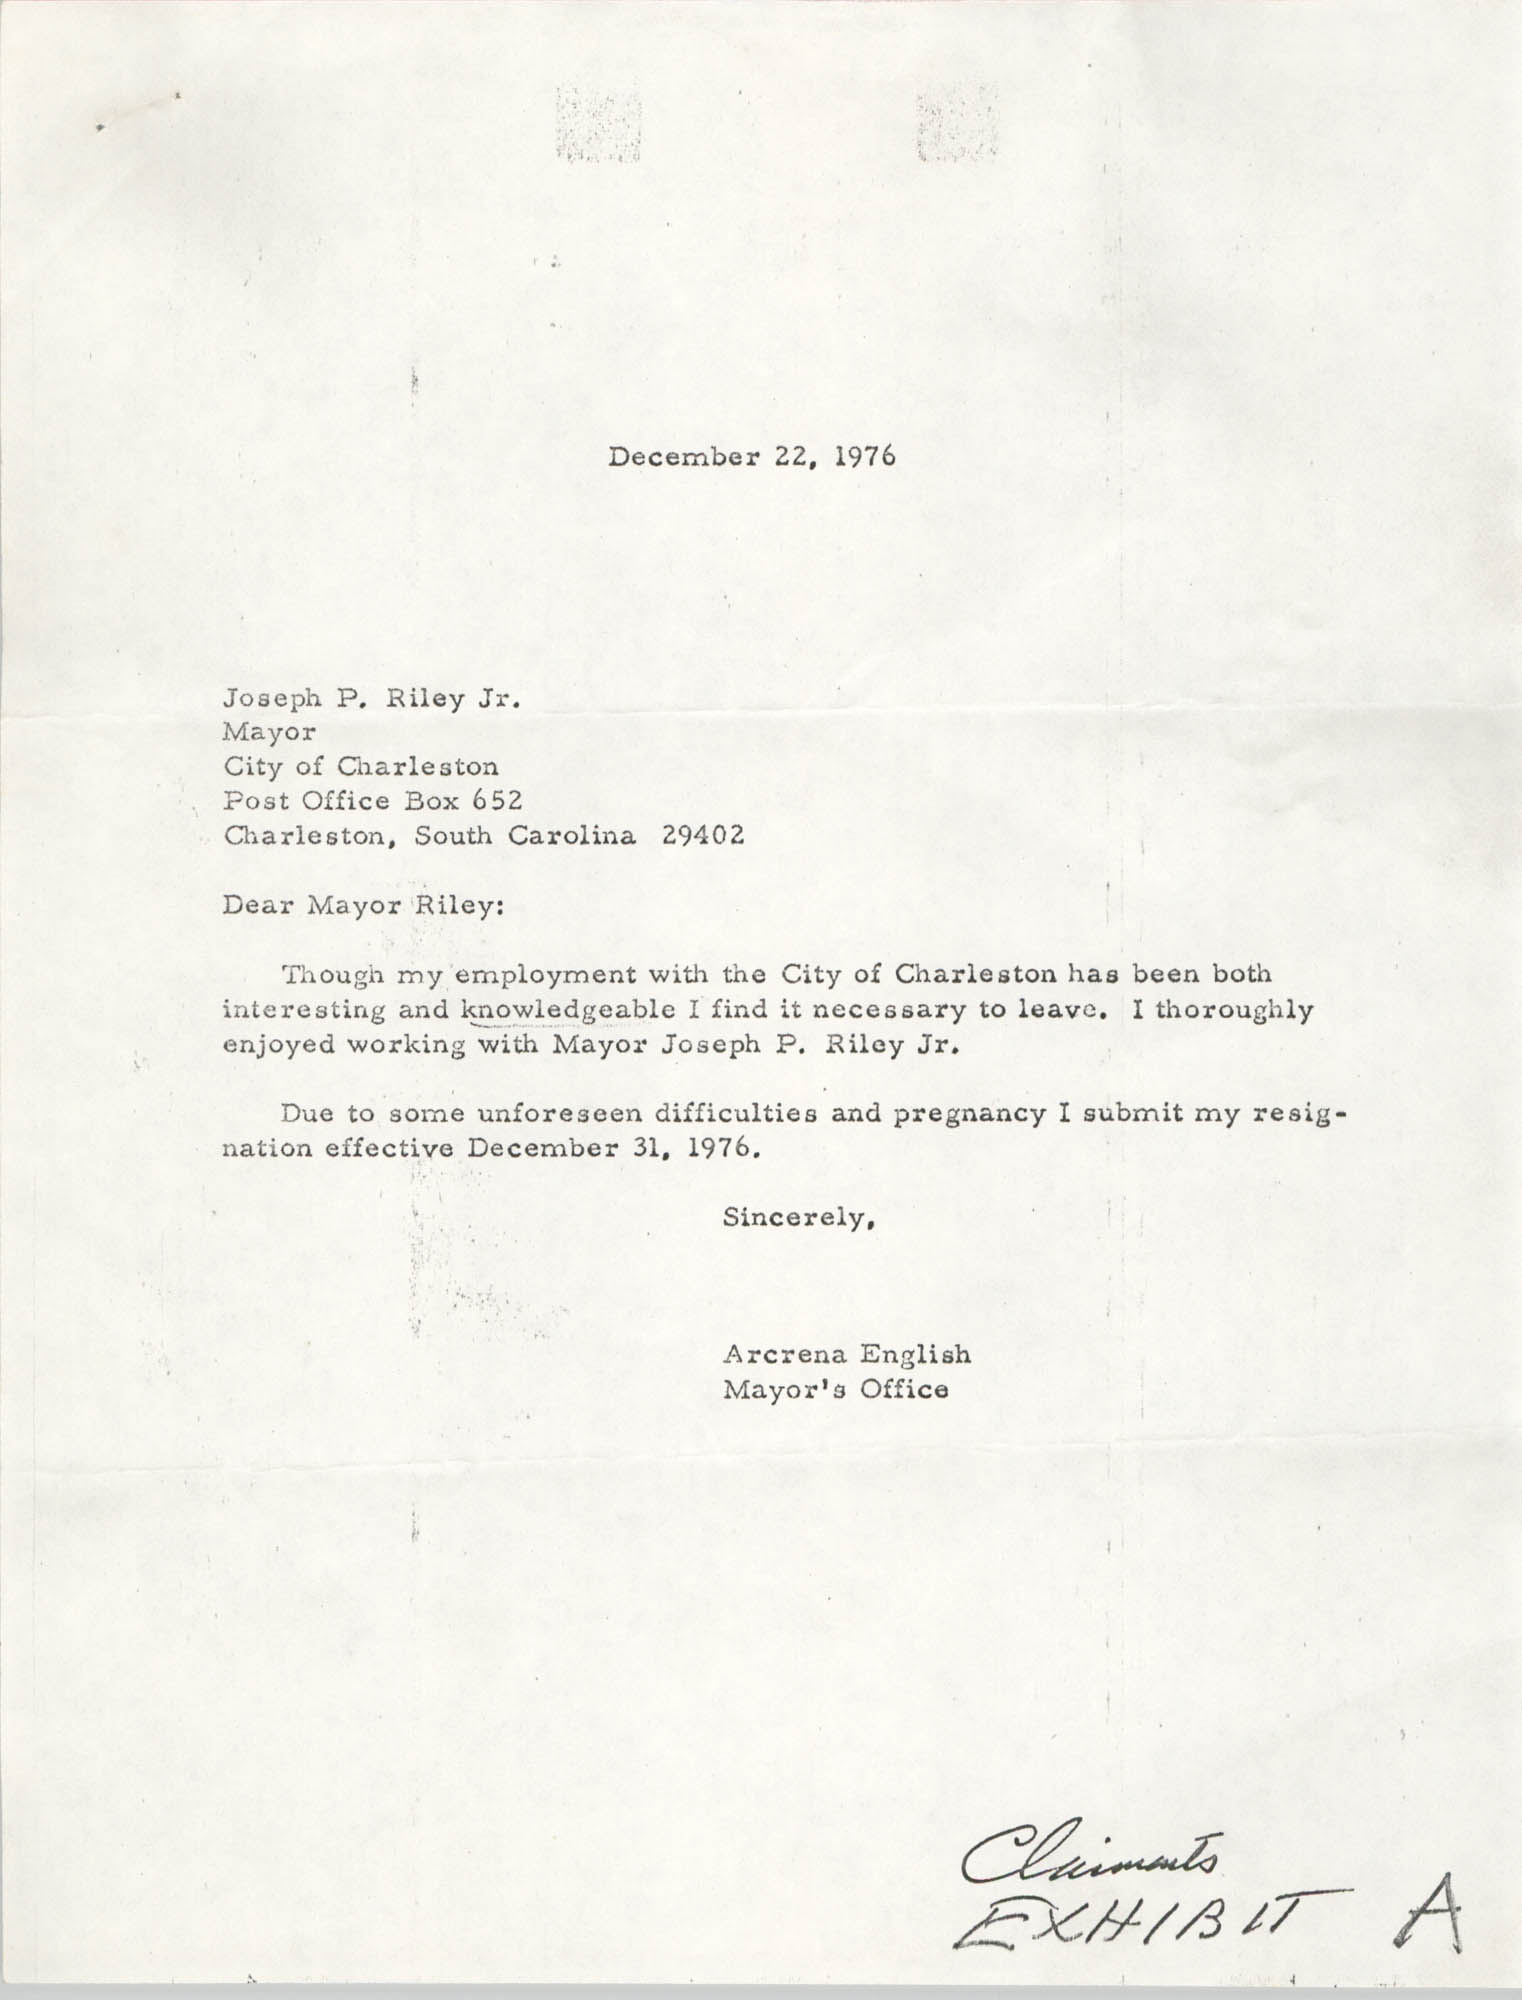 Letter from Arcrena English to Joseph P. Riley, Jr., December 22, 1976